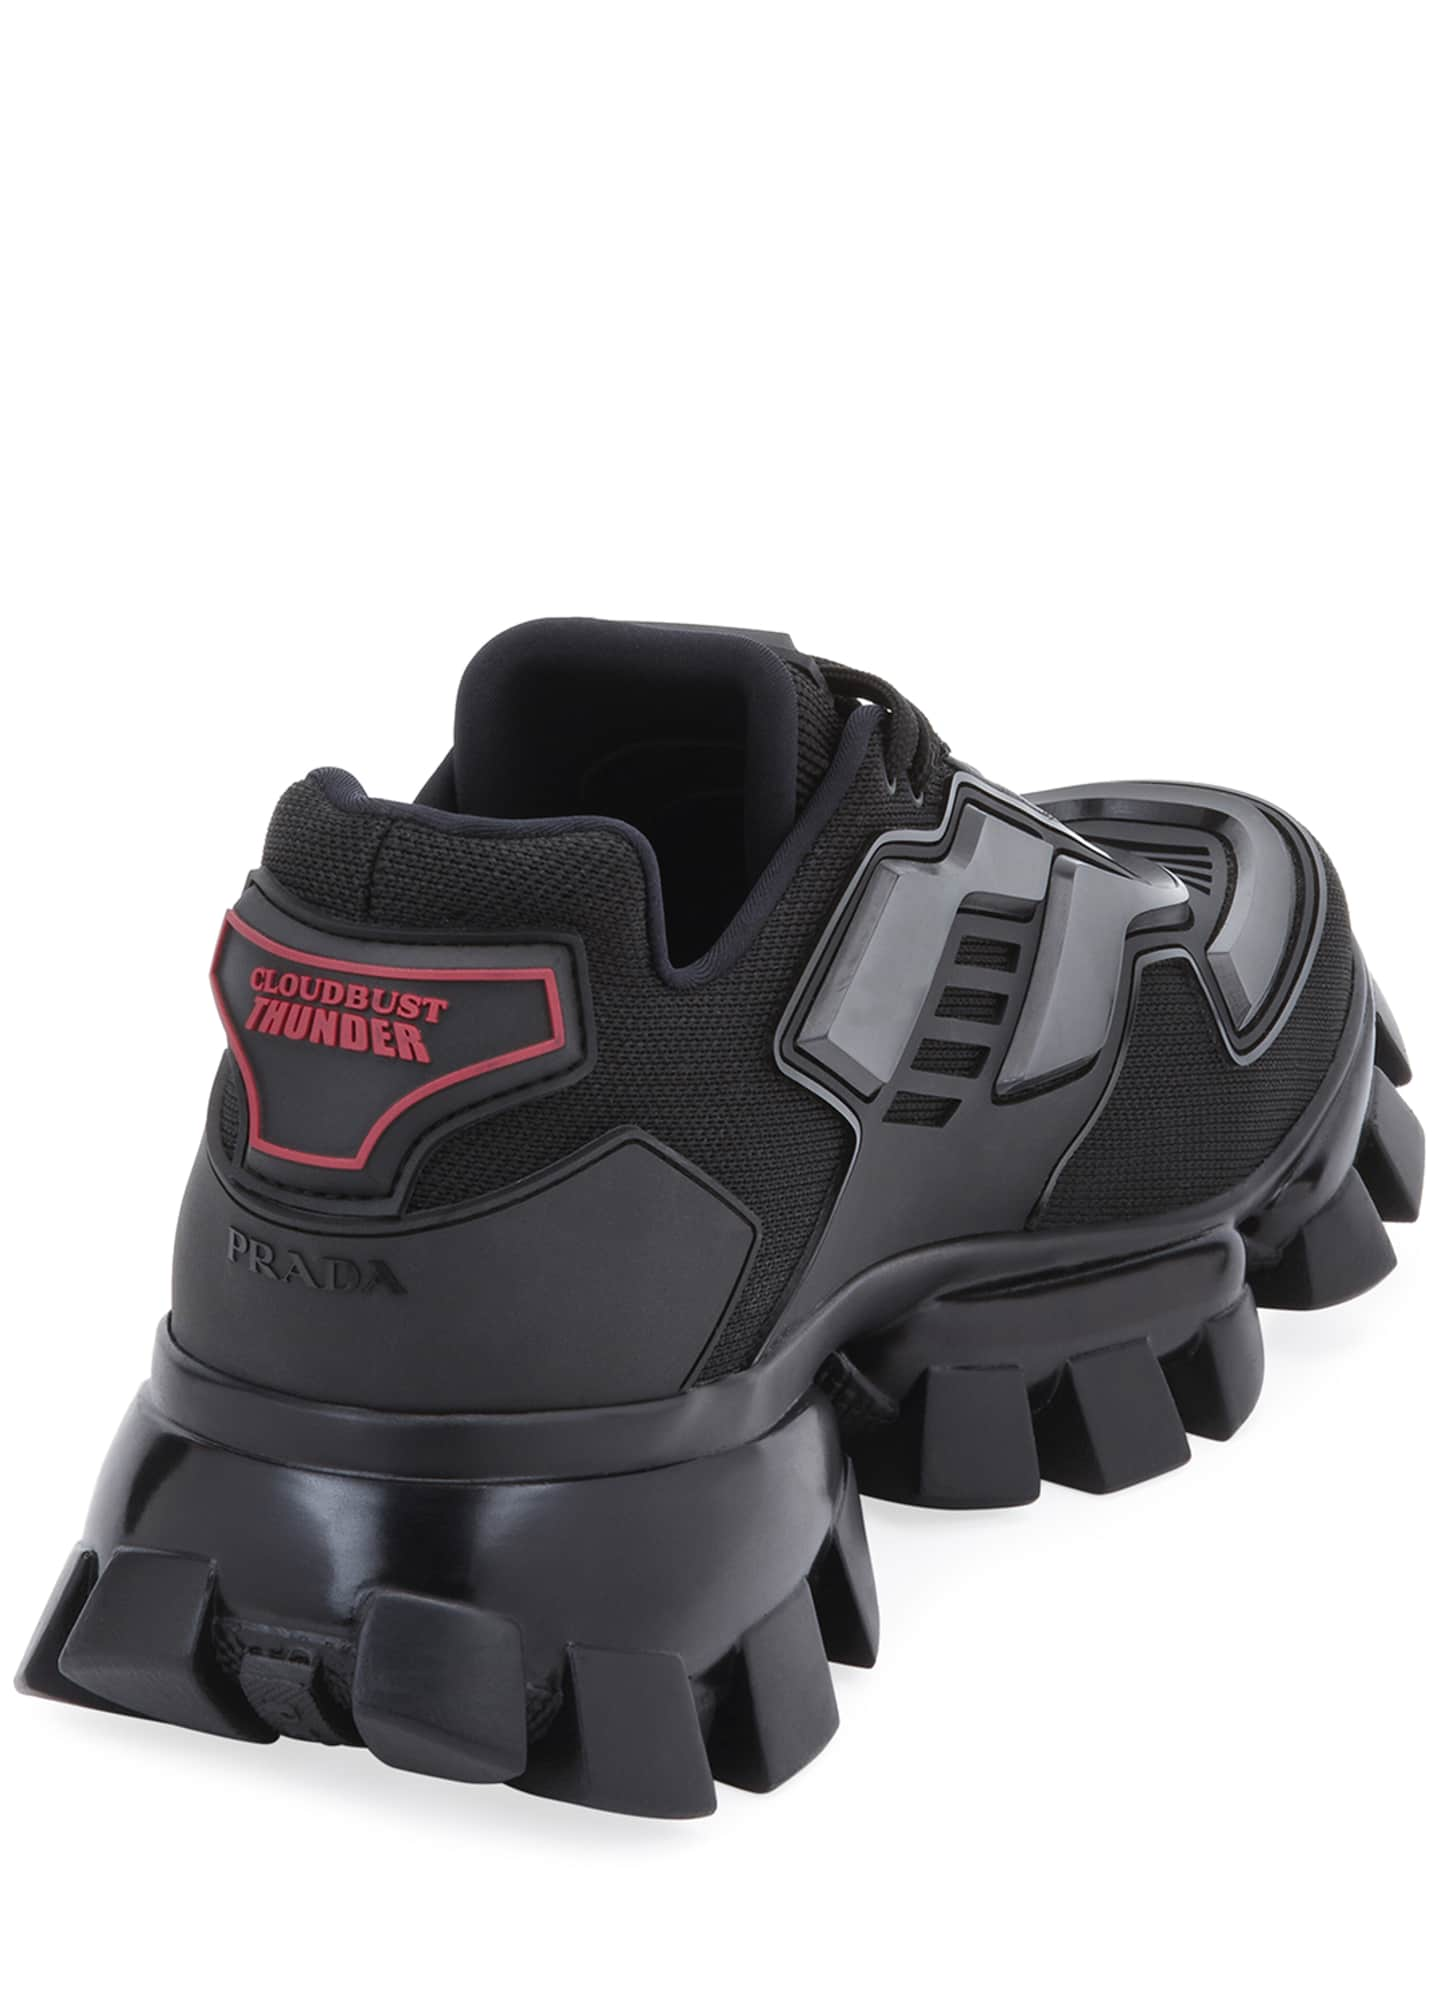 Image 3 of 3: Men's Cloudbust Thunder Sport Sneakers